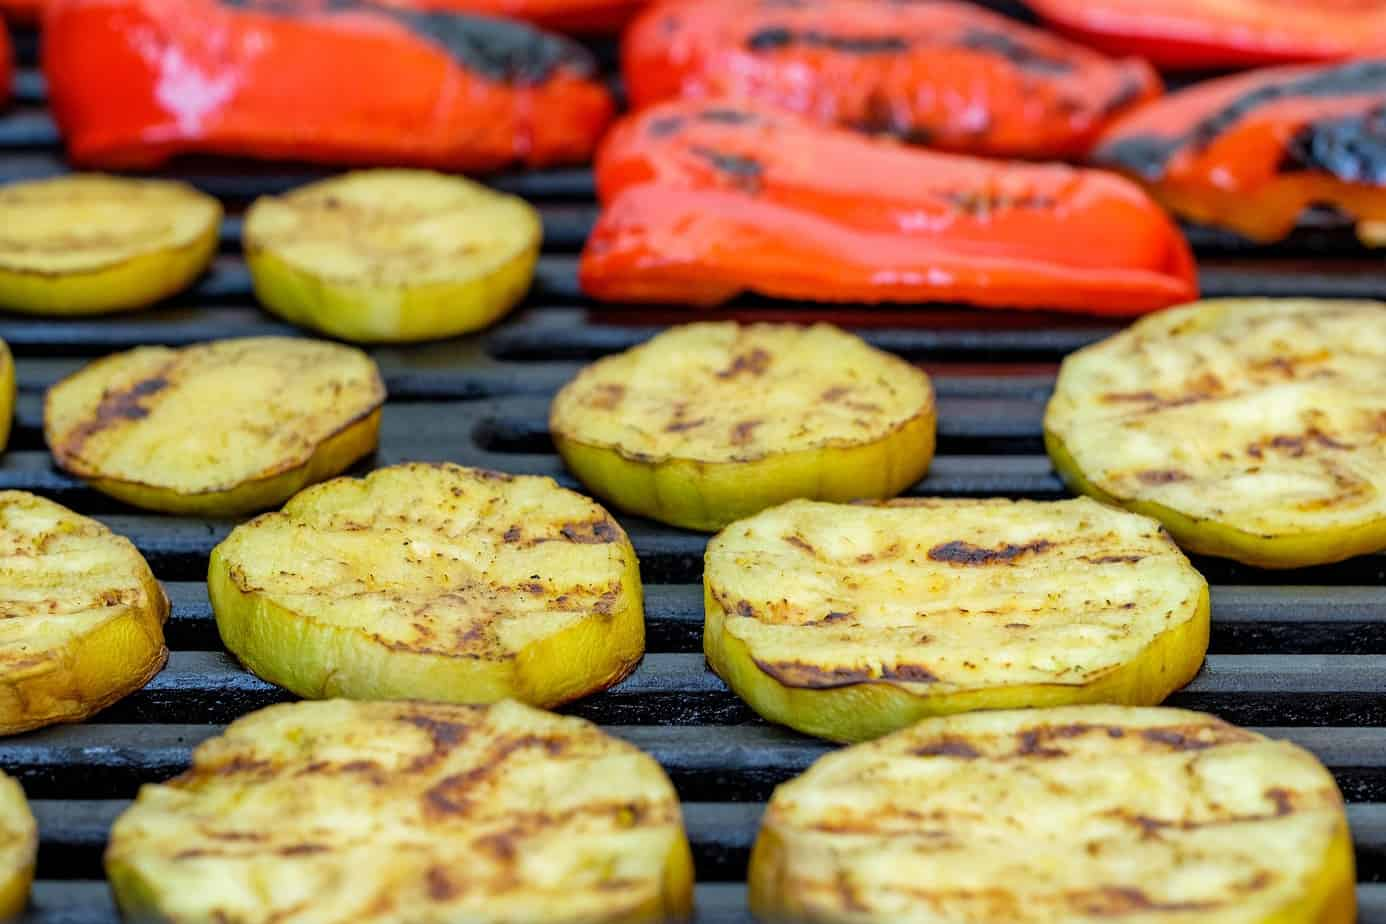 picture of pepper and squash grilling on bbq